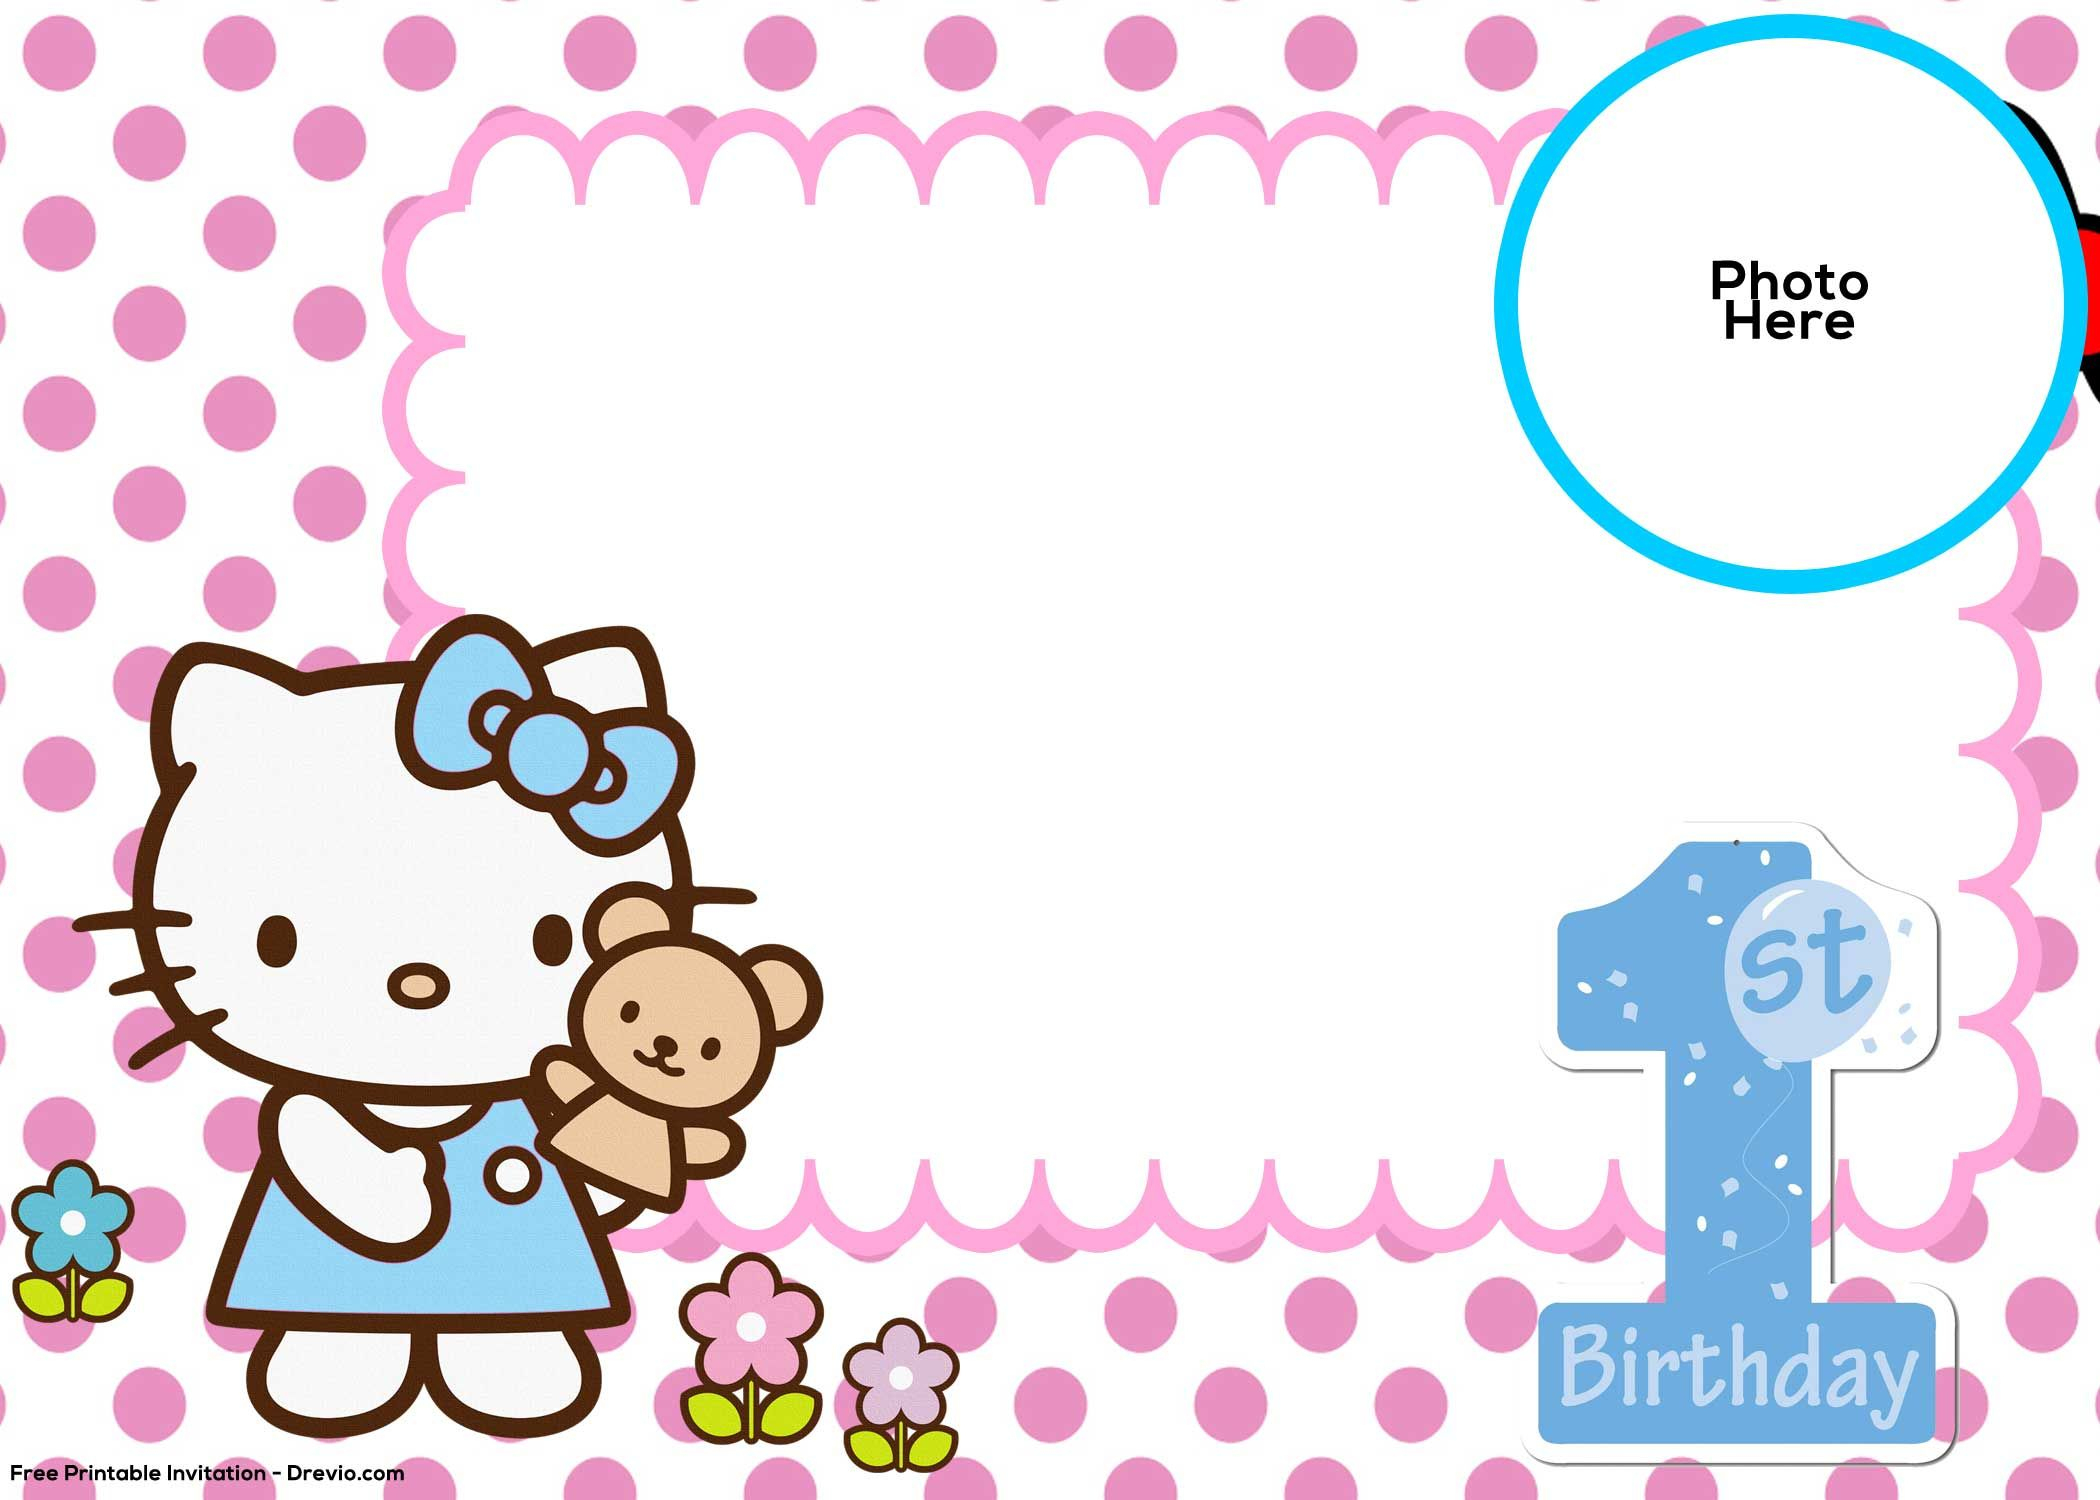 Free Hello Kitty 1St Birthday Invitation | Mickey | Pinterest - Hello Kitty Free Printable Invitations For Birthday